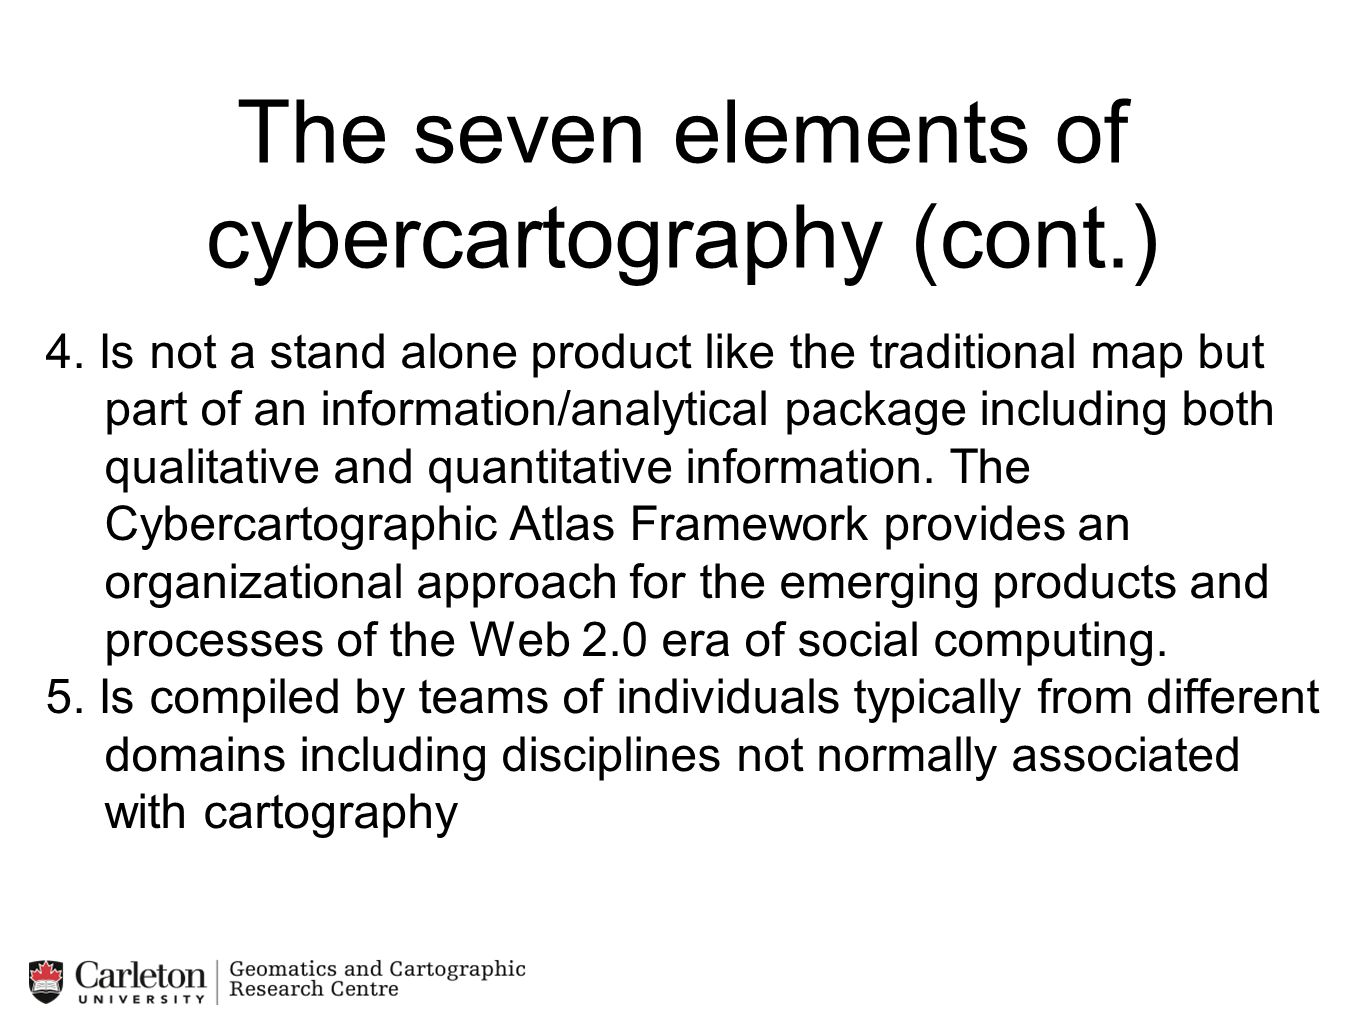 The seven elements of cybercartography (cont.) 6.